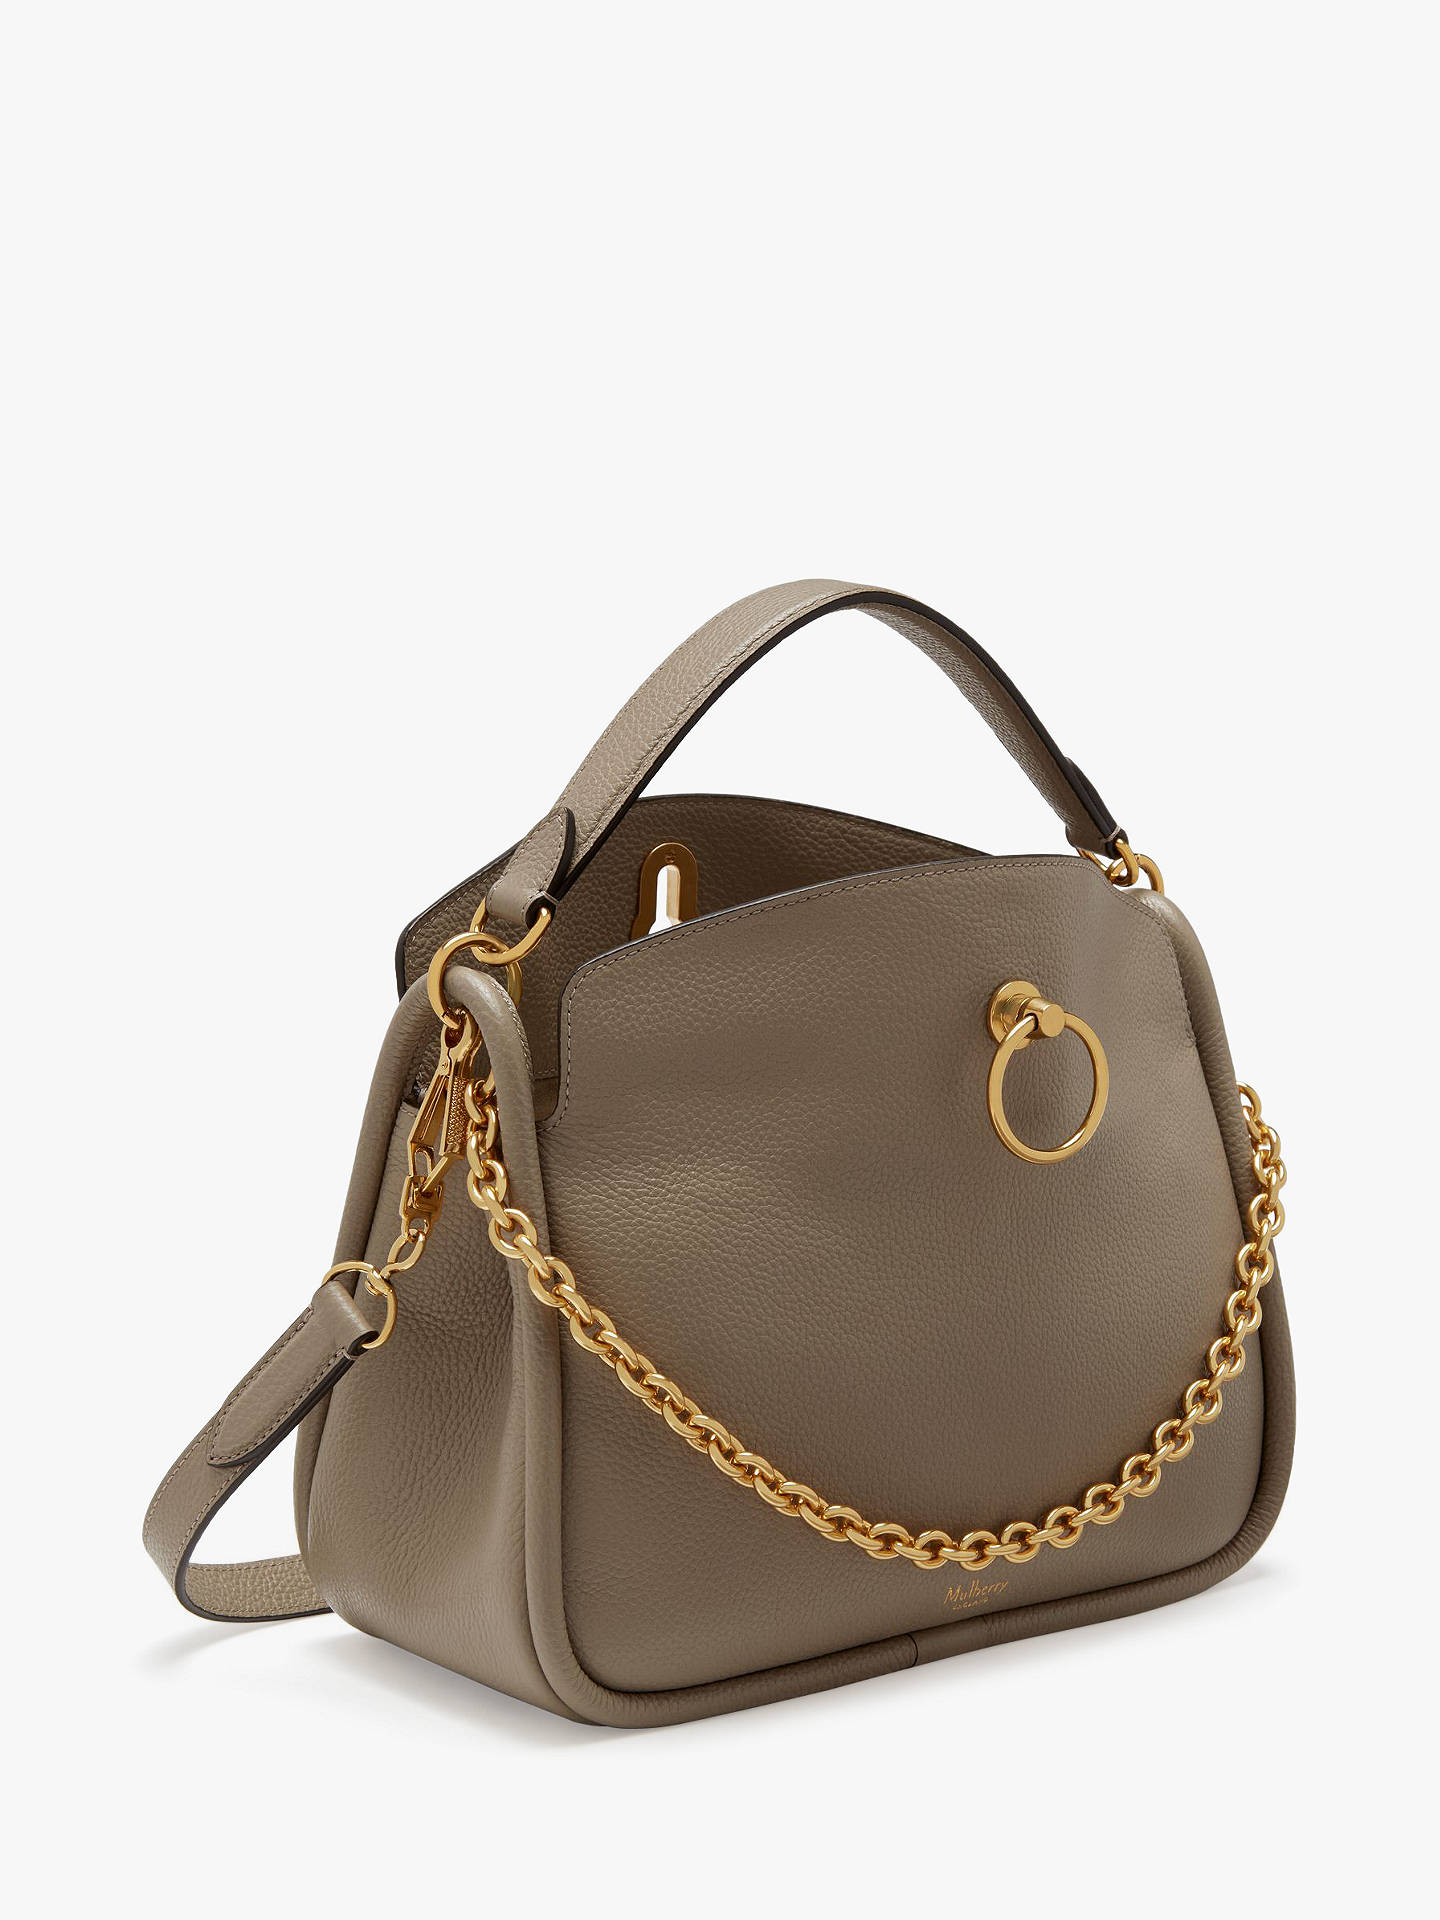 Mulberry Small Leighton Classic Grain Leather Shoulder Bag Grey Online At Johnlewis